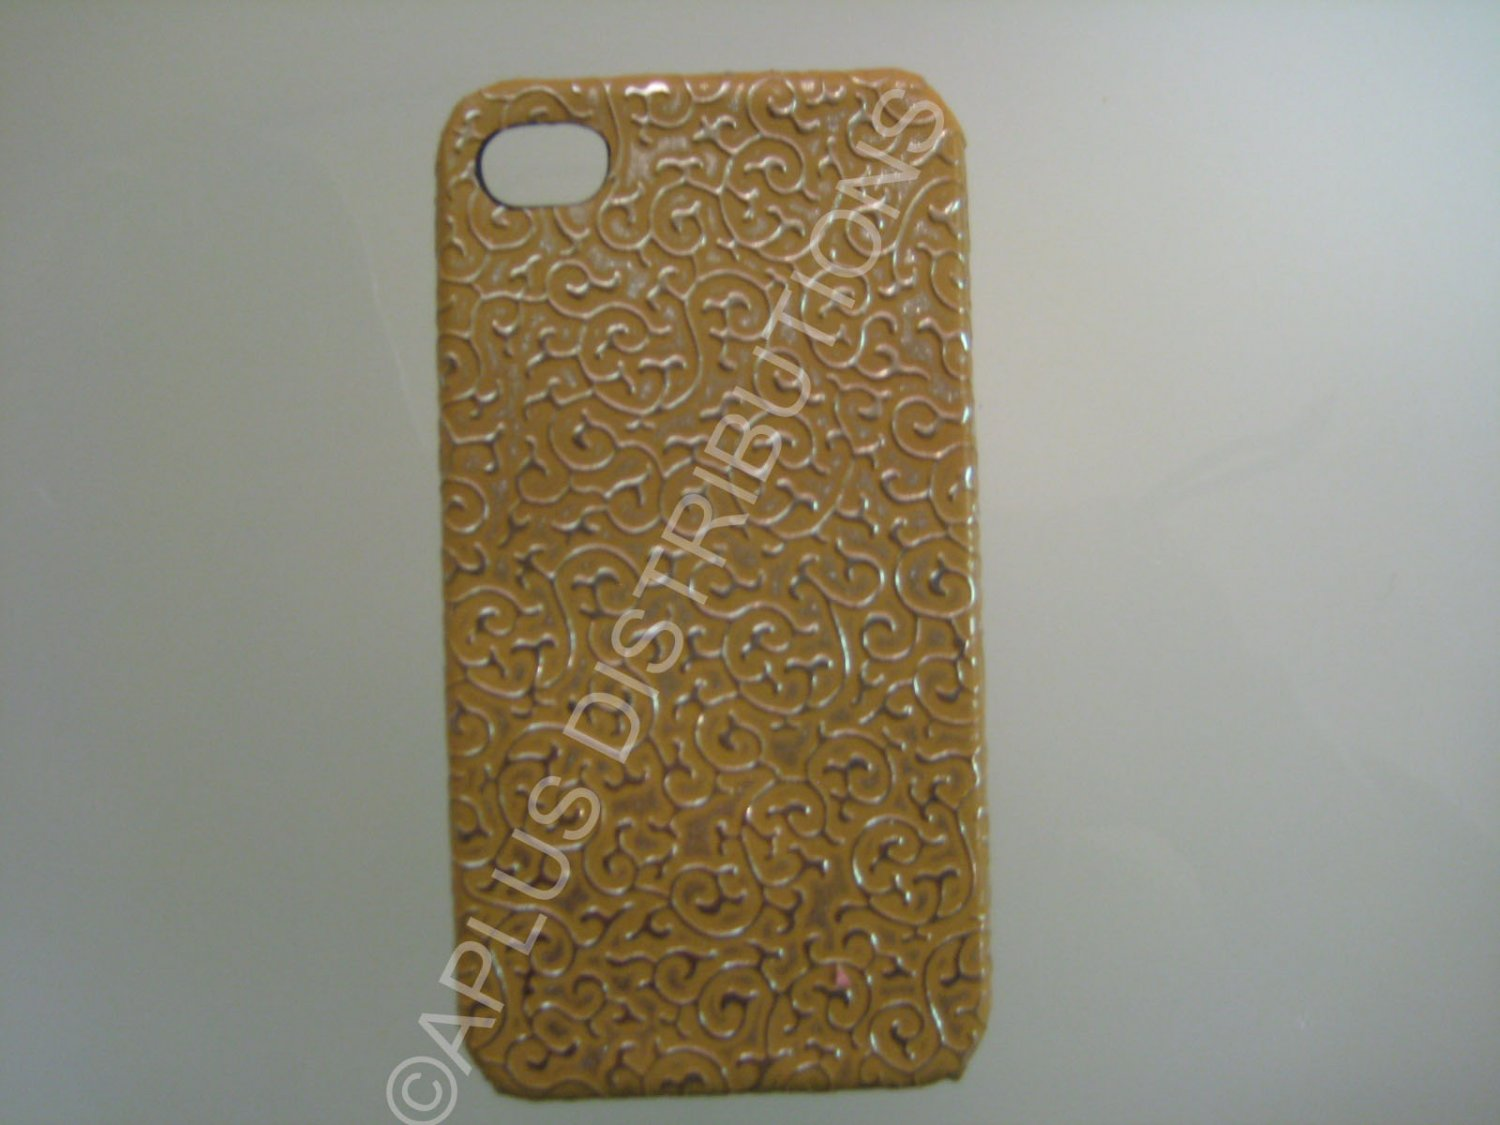 New Gold Ornate Vines Design Hard Protective Cover For iPhone 4 - (0087)